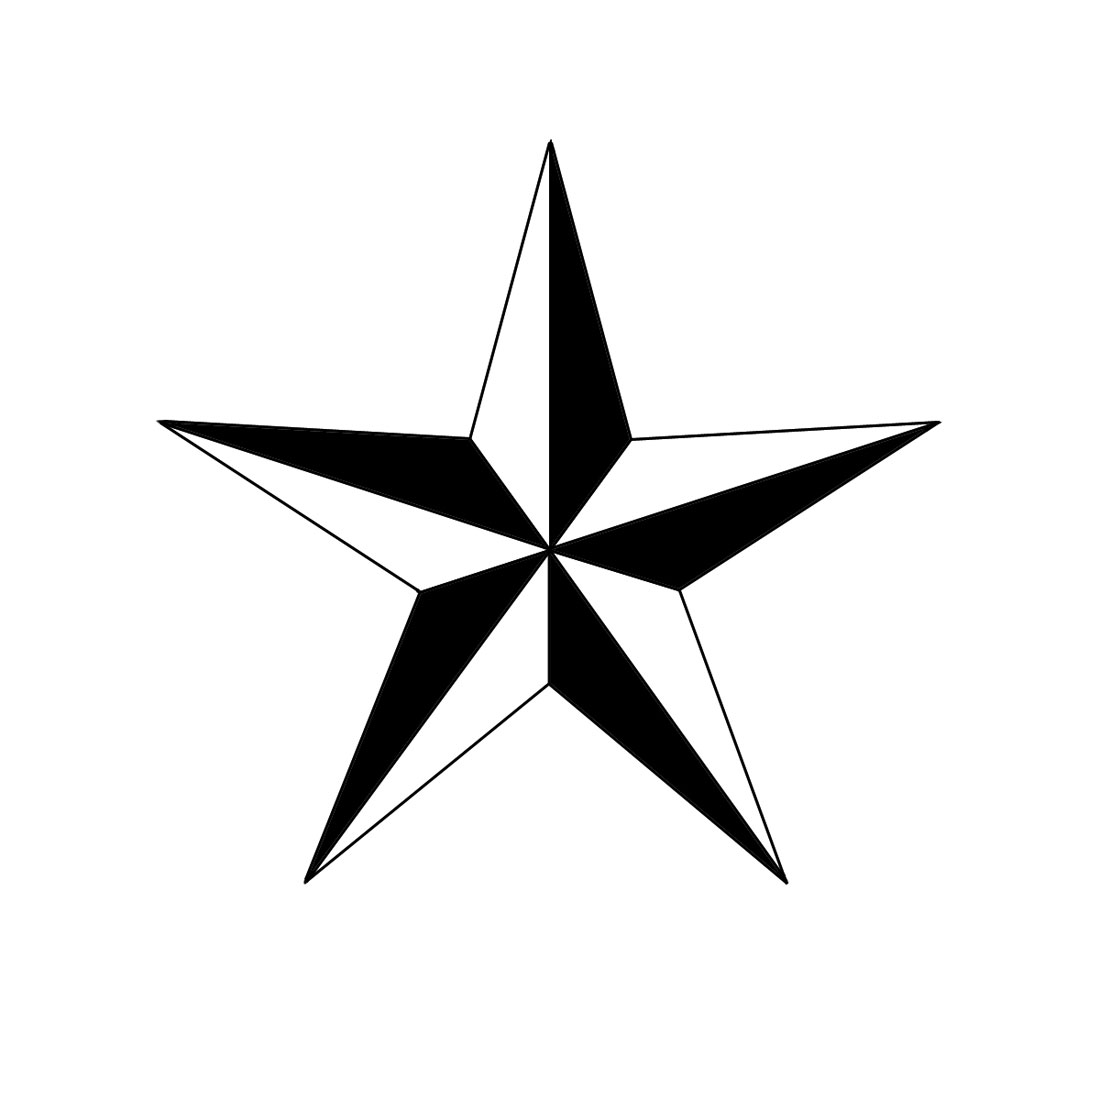 How To Draw A Nautical Star: 6 Steps (with Pictures) - WikiHow